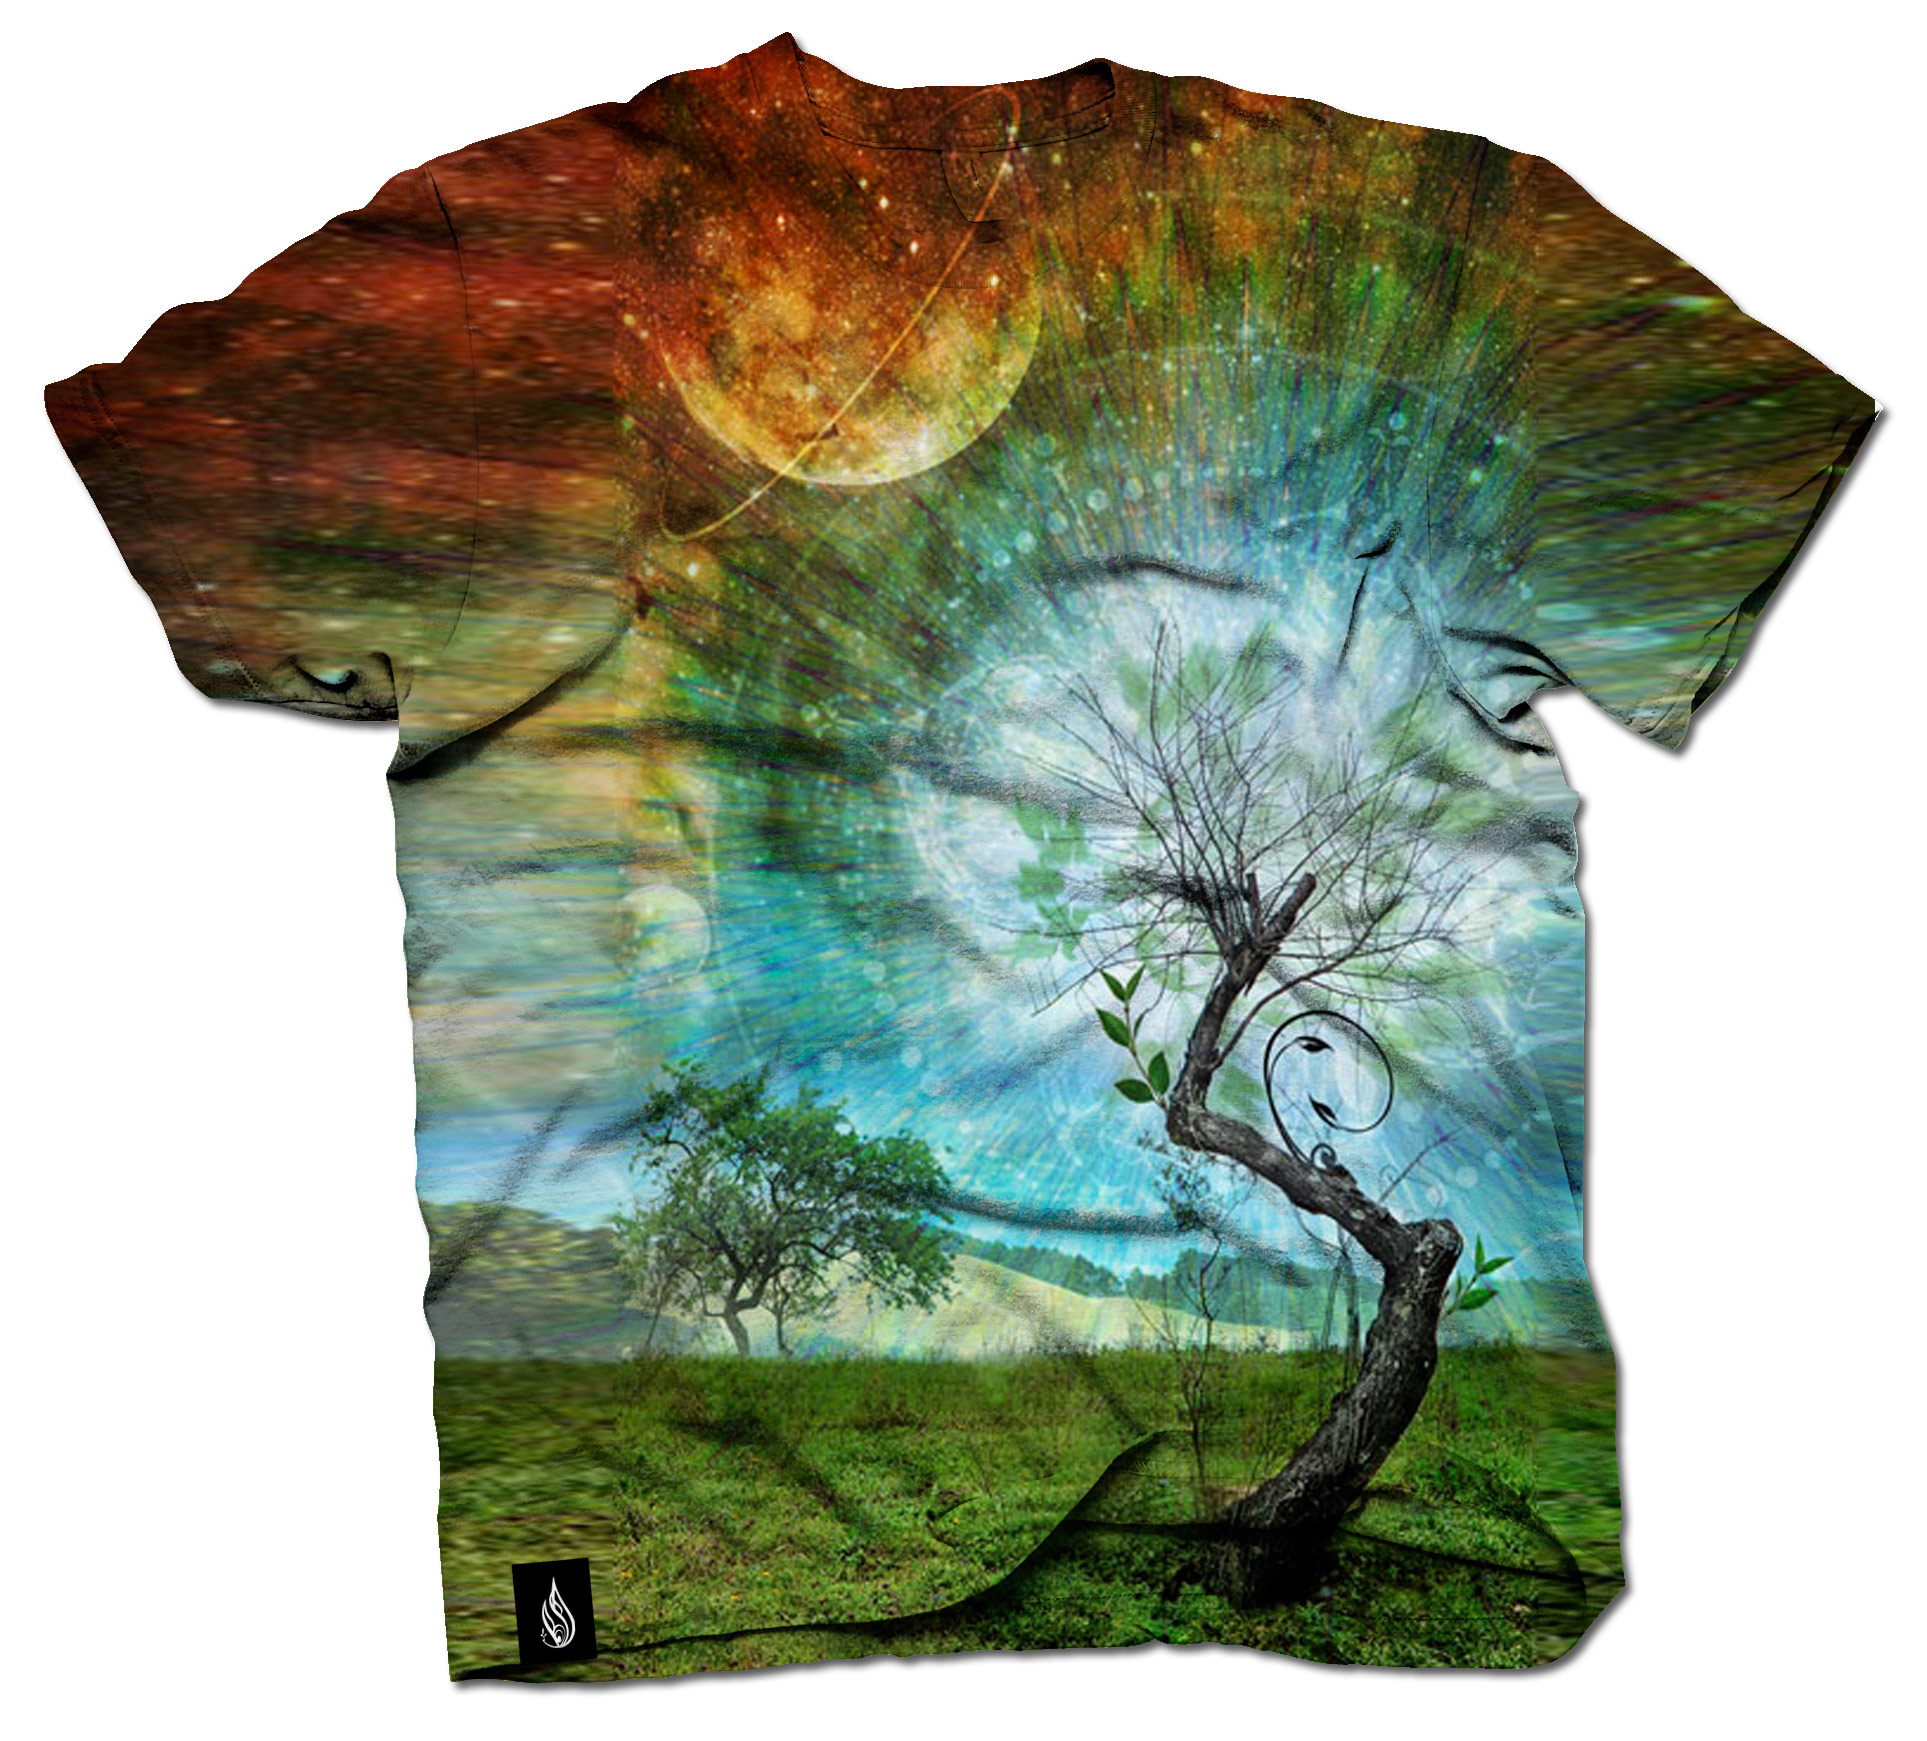 Dye Sublimation Printers Dye Sublimation Printing Services